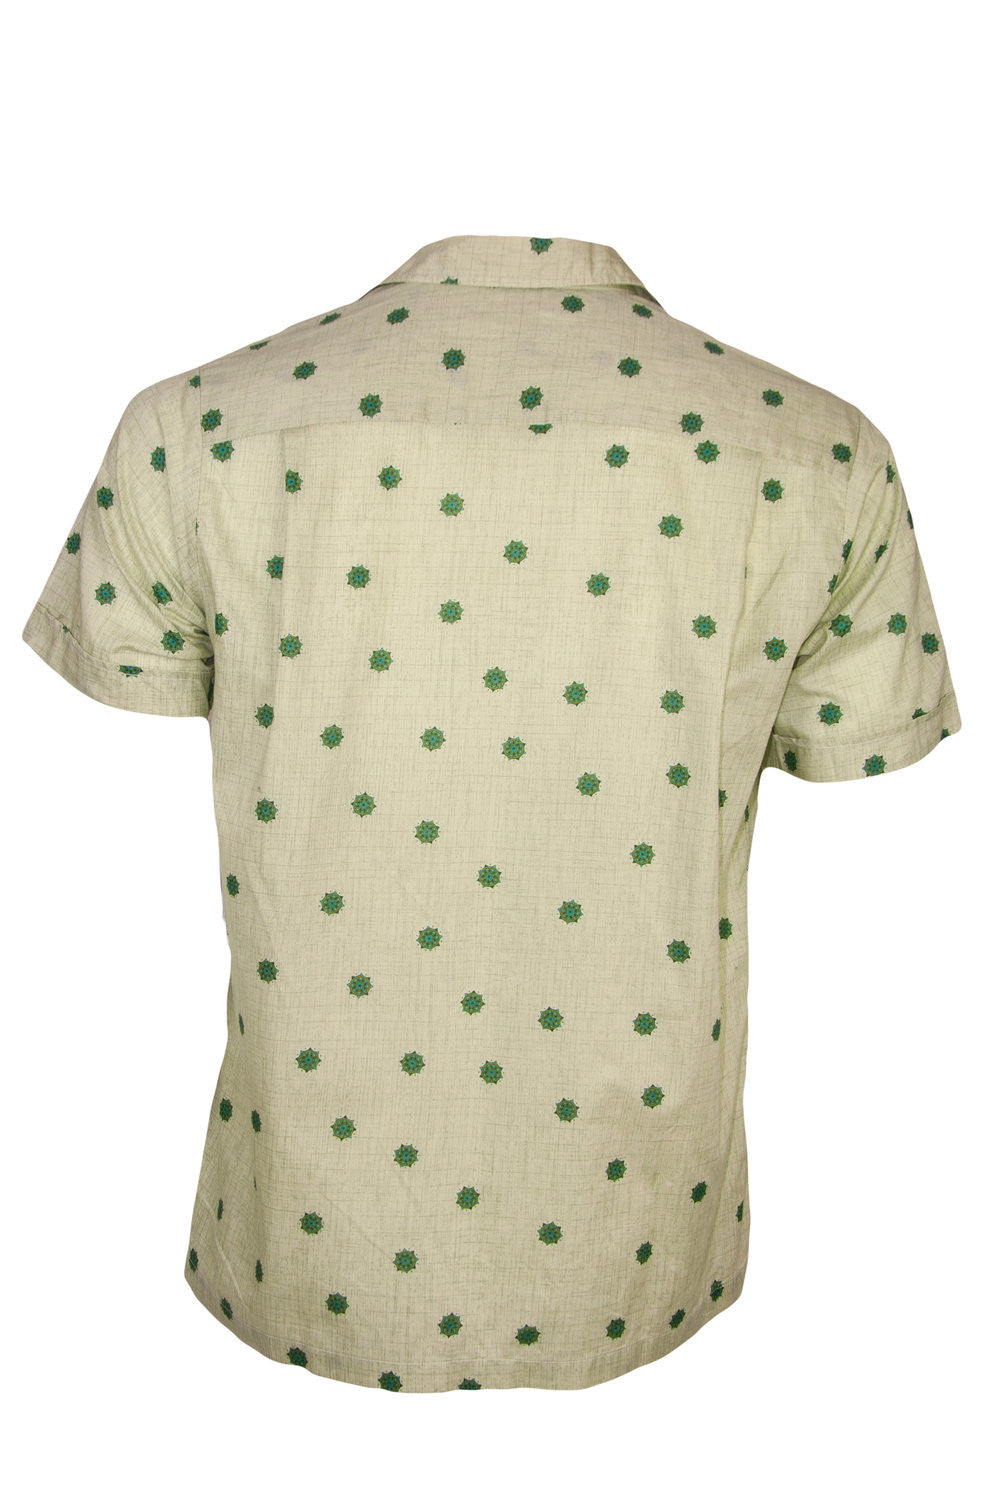 Vintage button up shirt with green print